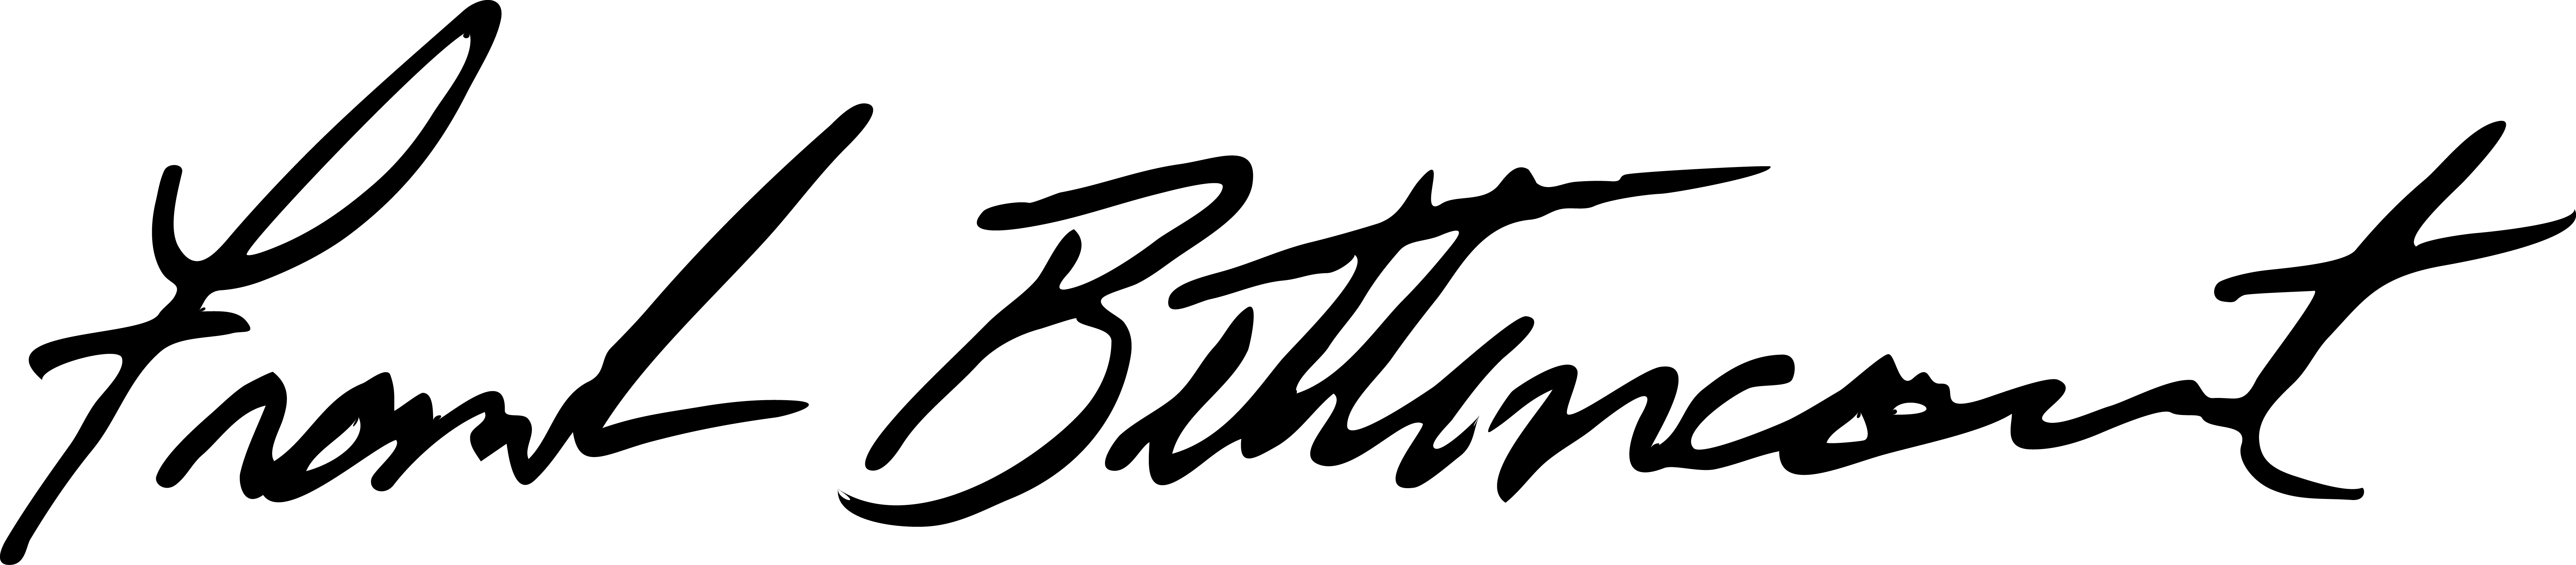 Frank Bettencourt Signature